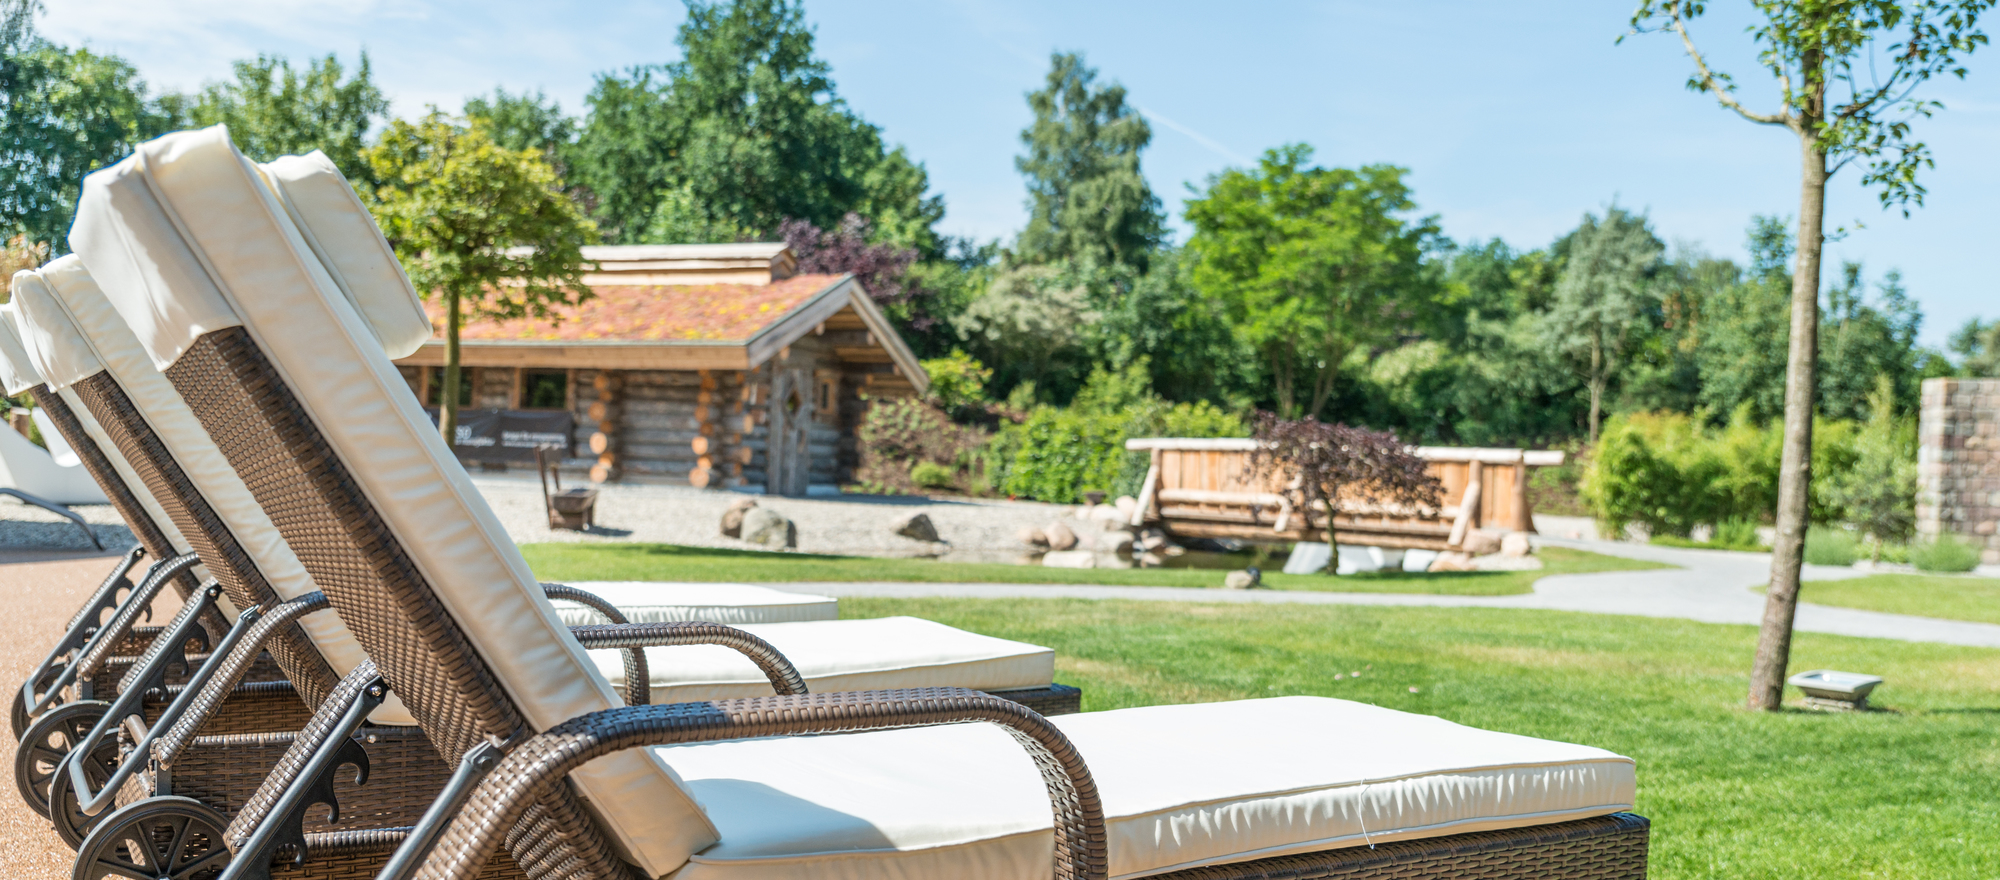 Enjoy the silence in the outdoor facility of the Alfen Saunaland in the Ringhotel Alfsee Piazza in Rieste, 3 stars superior hotel im Osnabrueck region